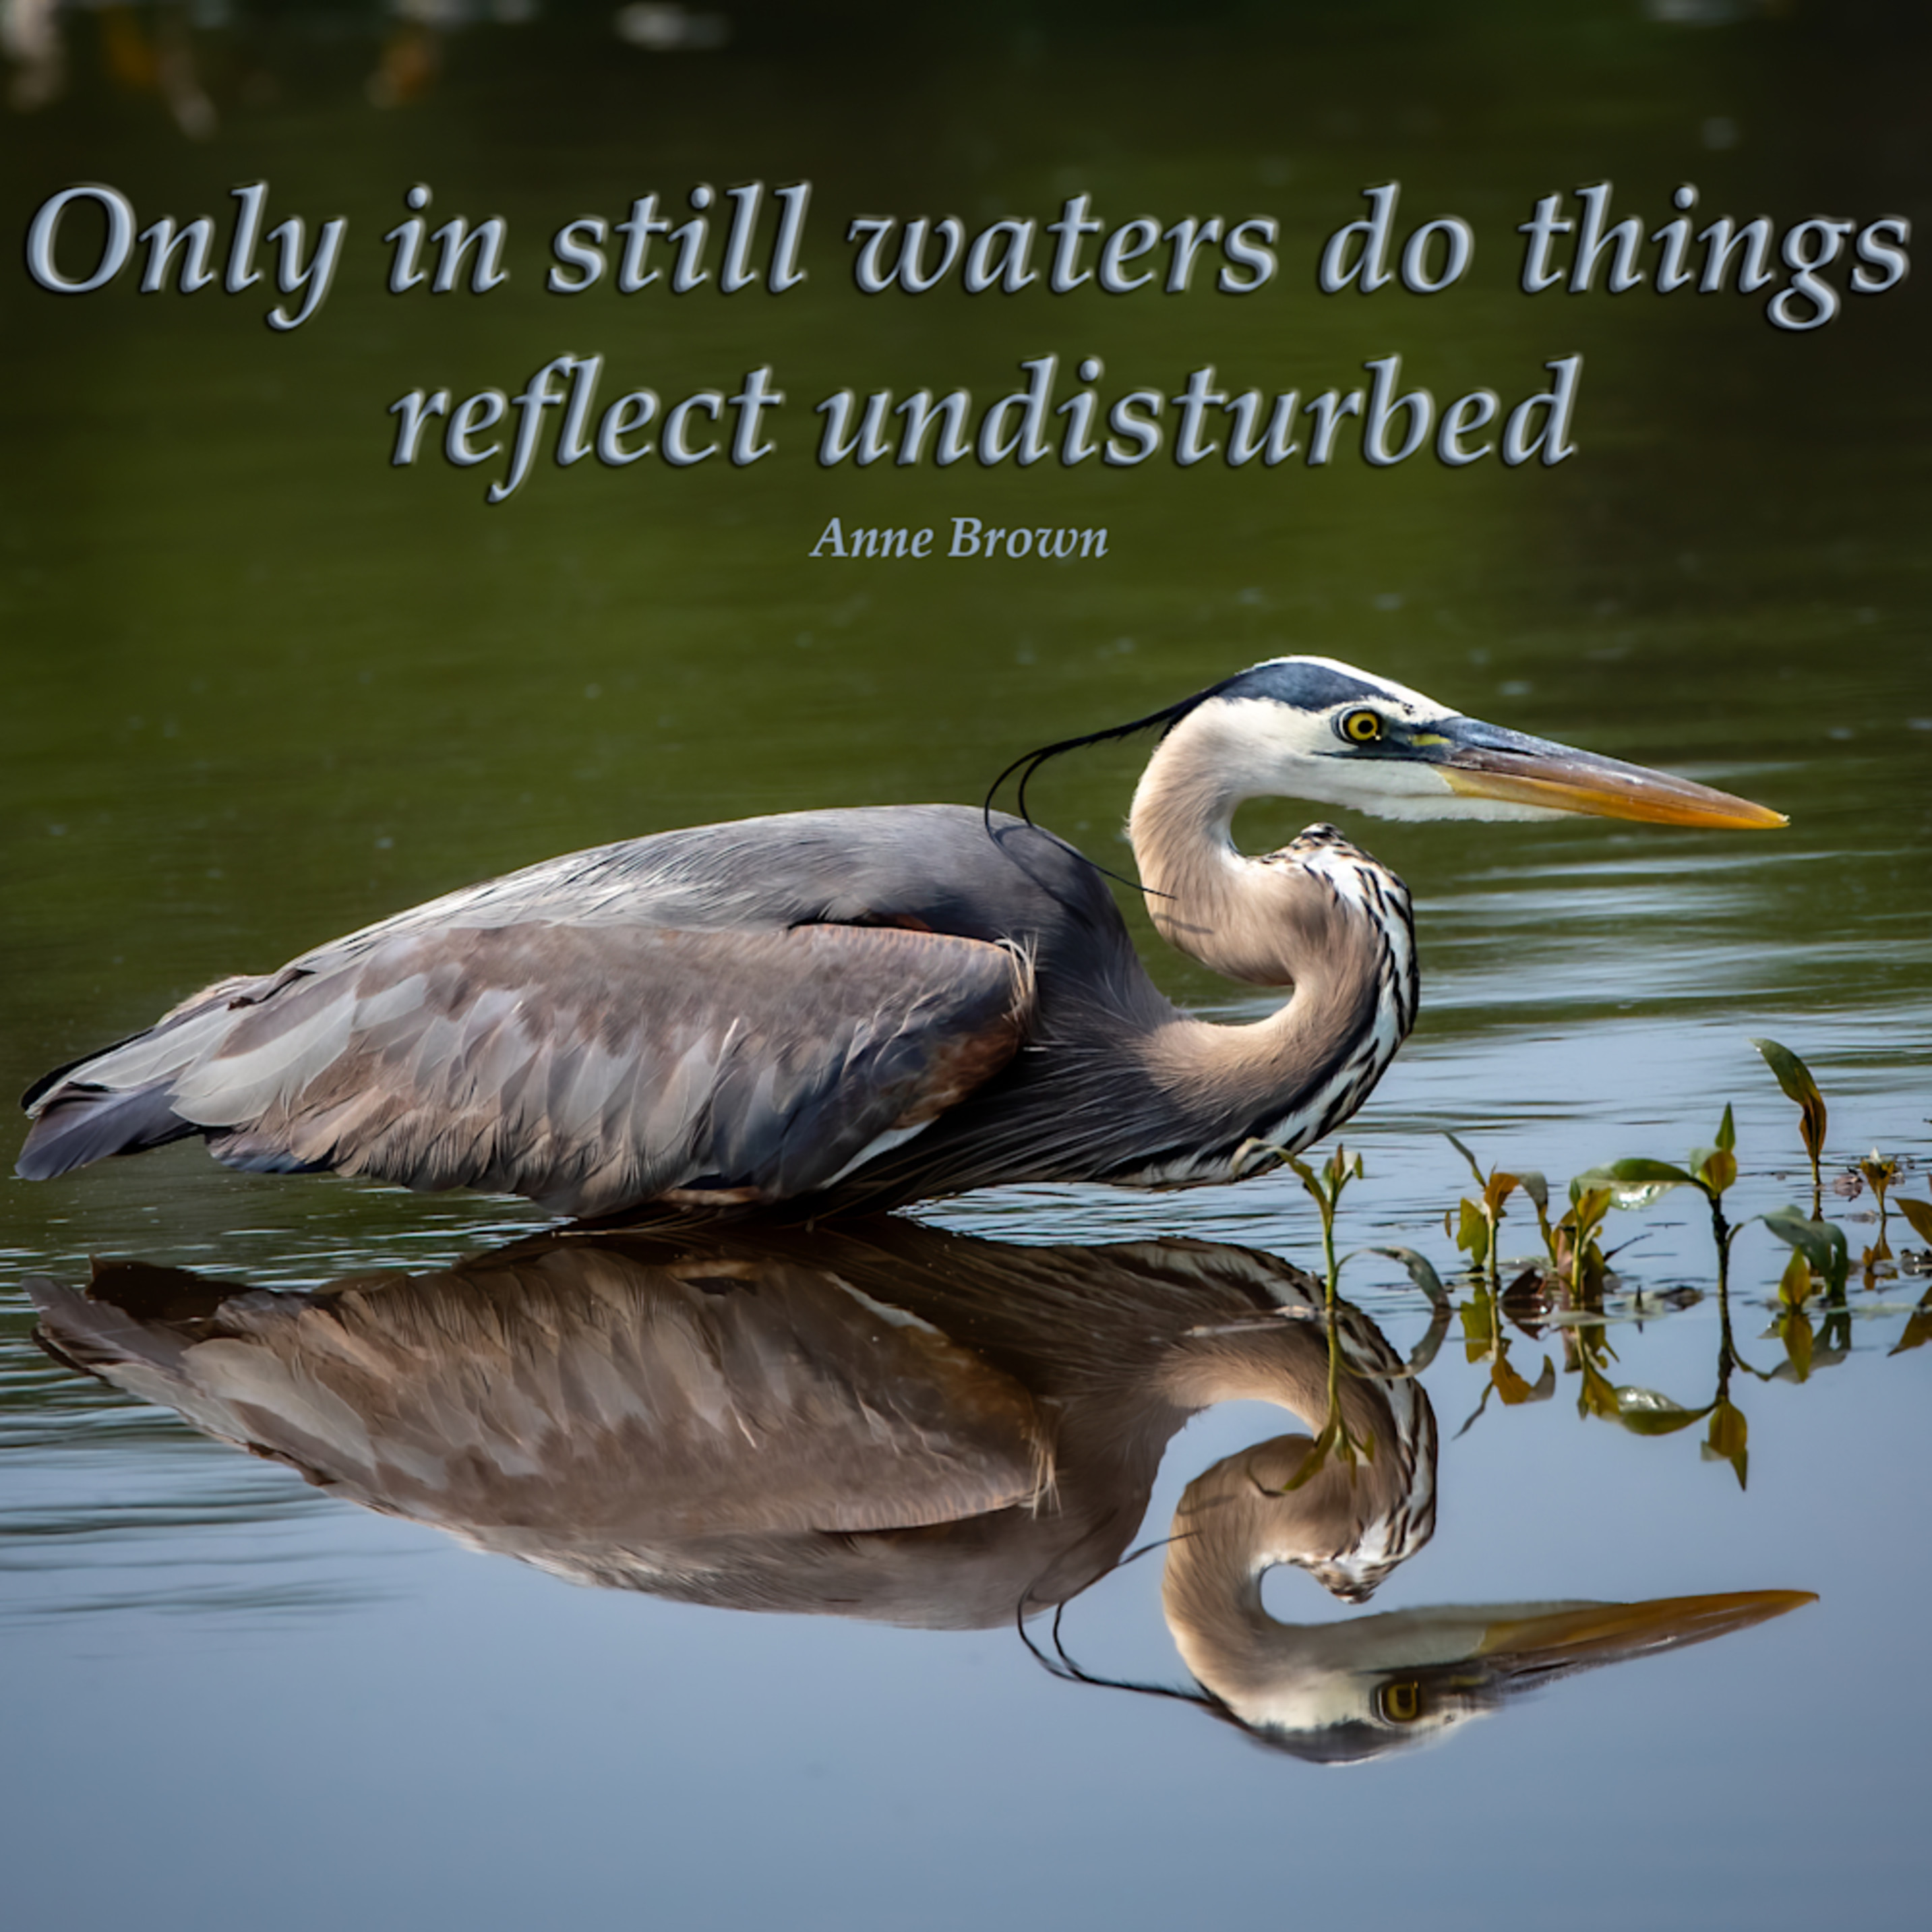 Only in still waters do things reflect undisturbed   great blue heron ccixug